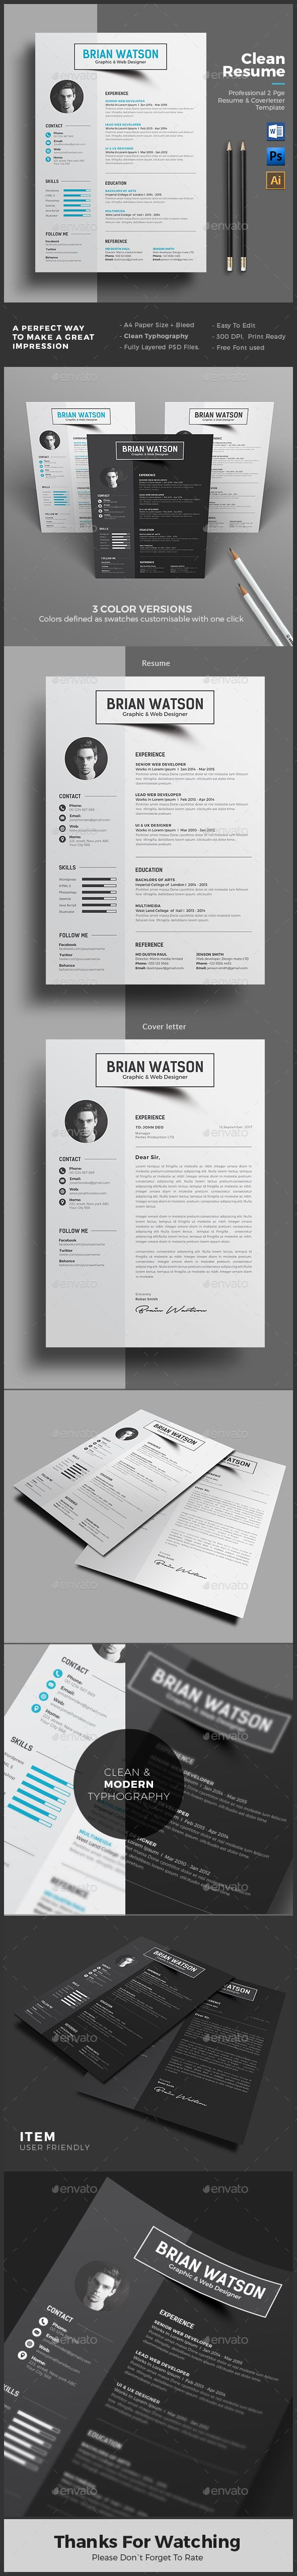 Resume Template PSD, AI Illustrator, MS Word. Download here: https://graphicriver.net/item/resume/17149731?ref=ksioks